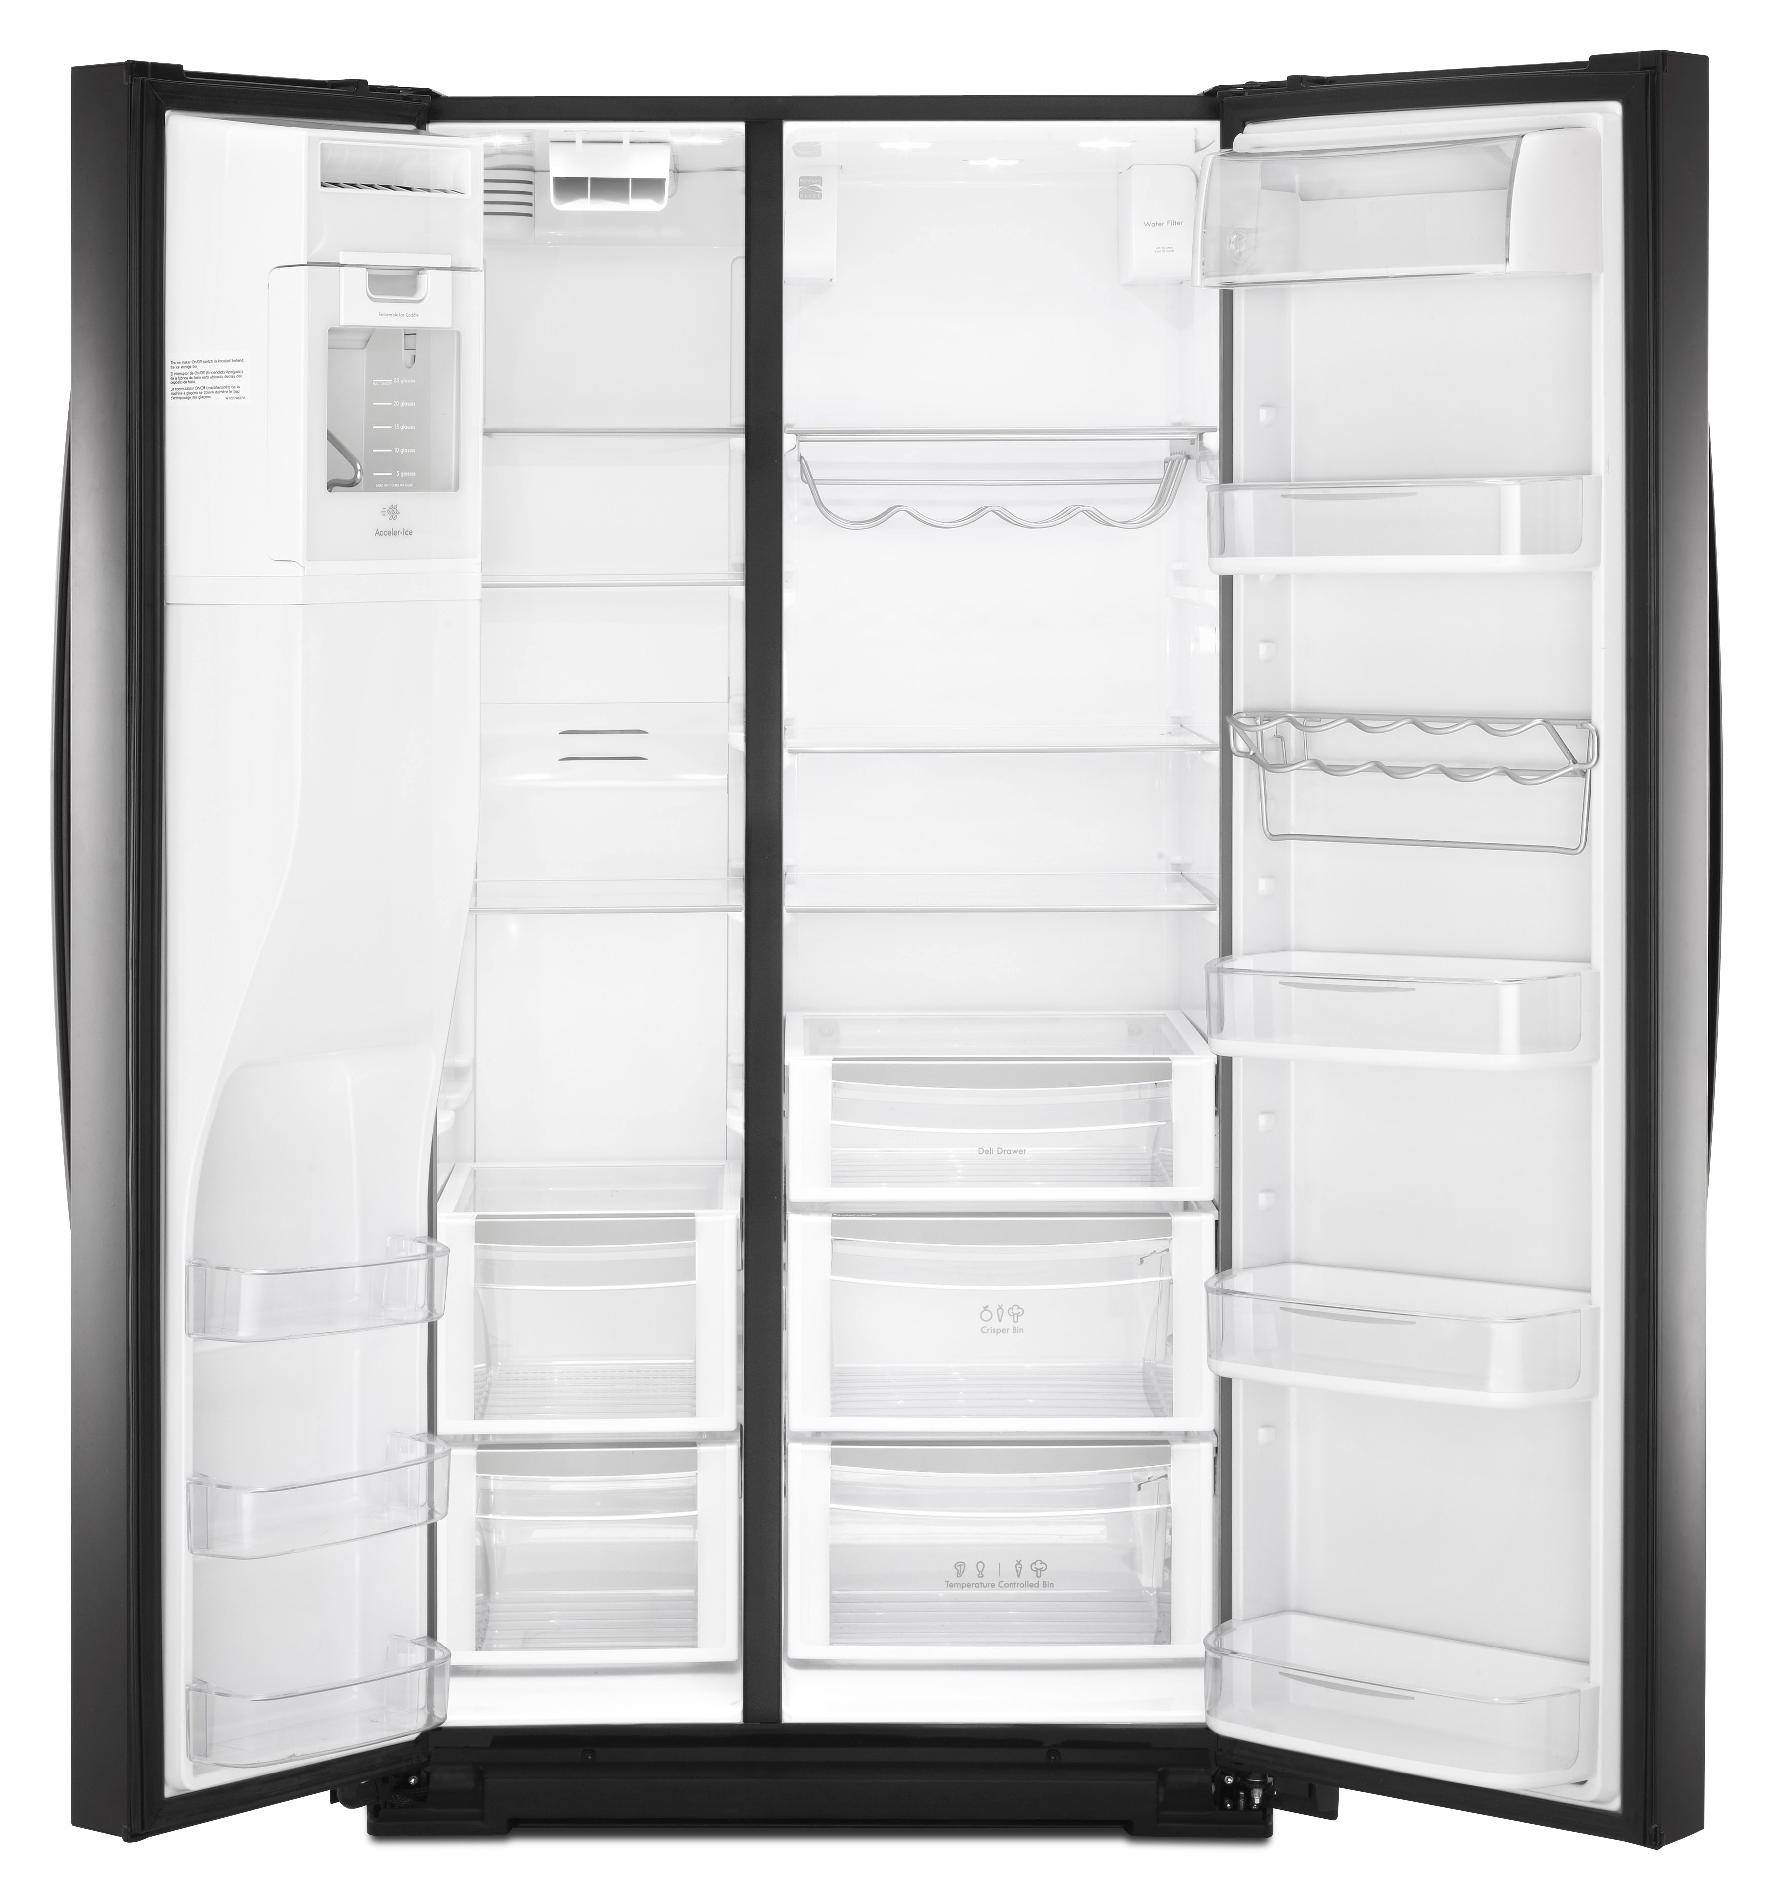 Kenmore Elite 29.8 cu. ft. Side-by-Side Refrigerator - Black